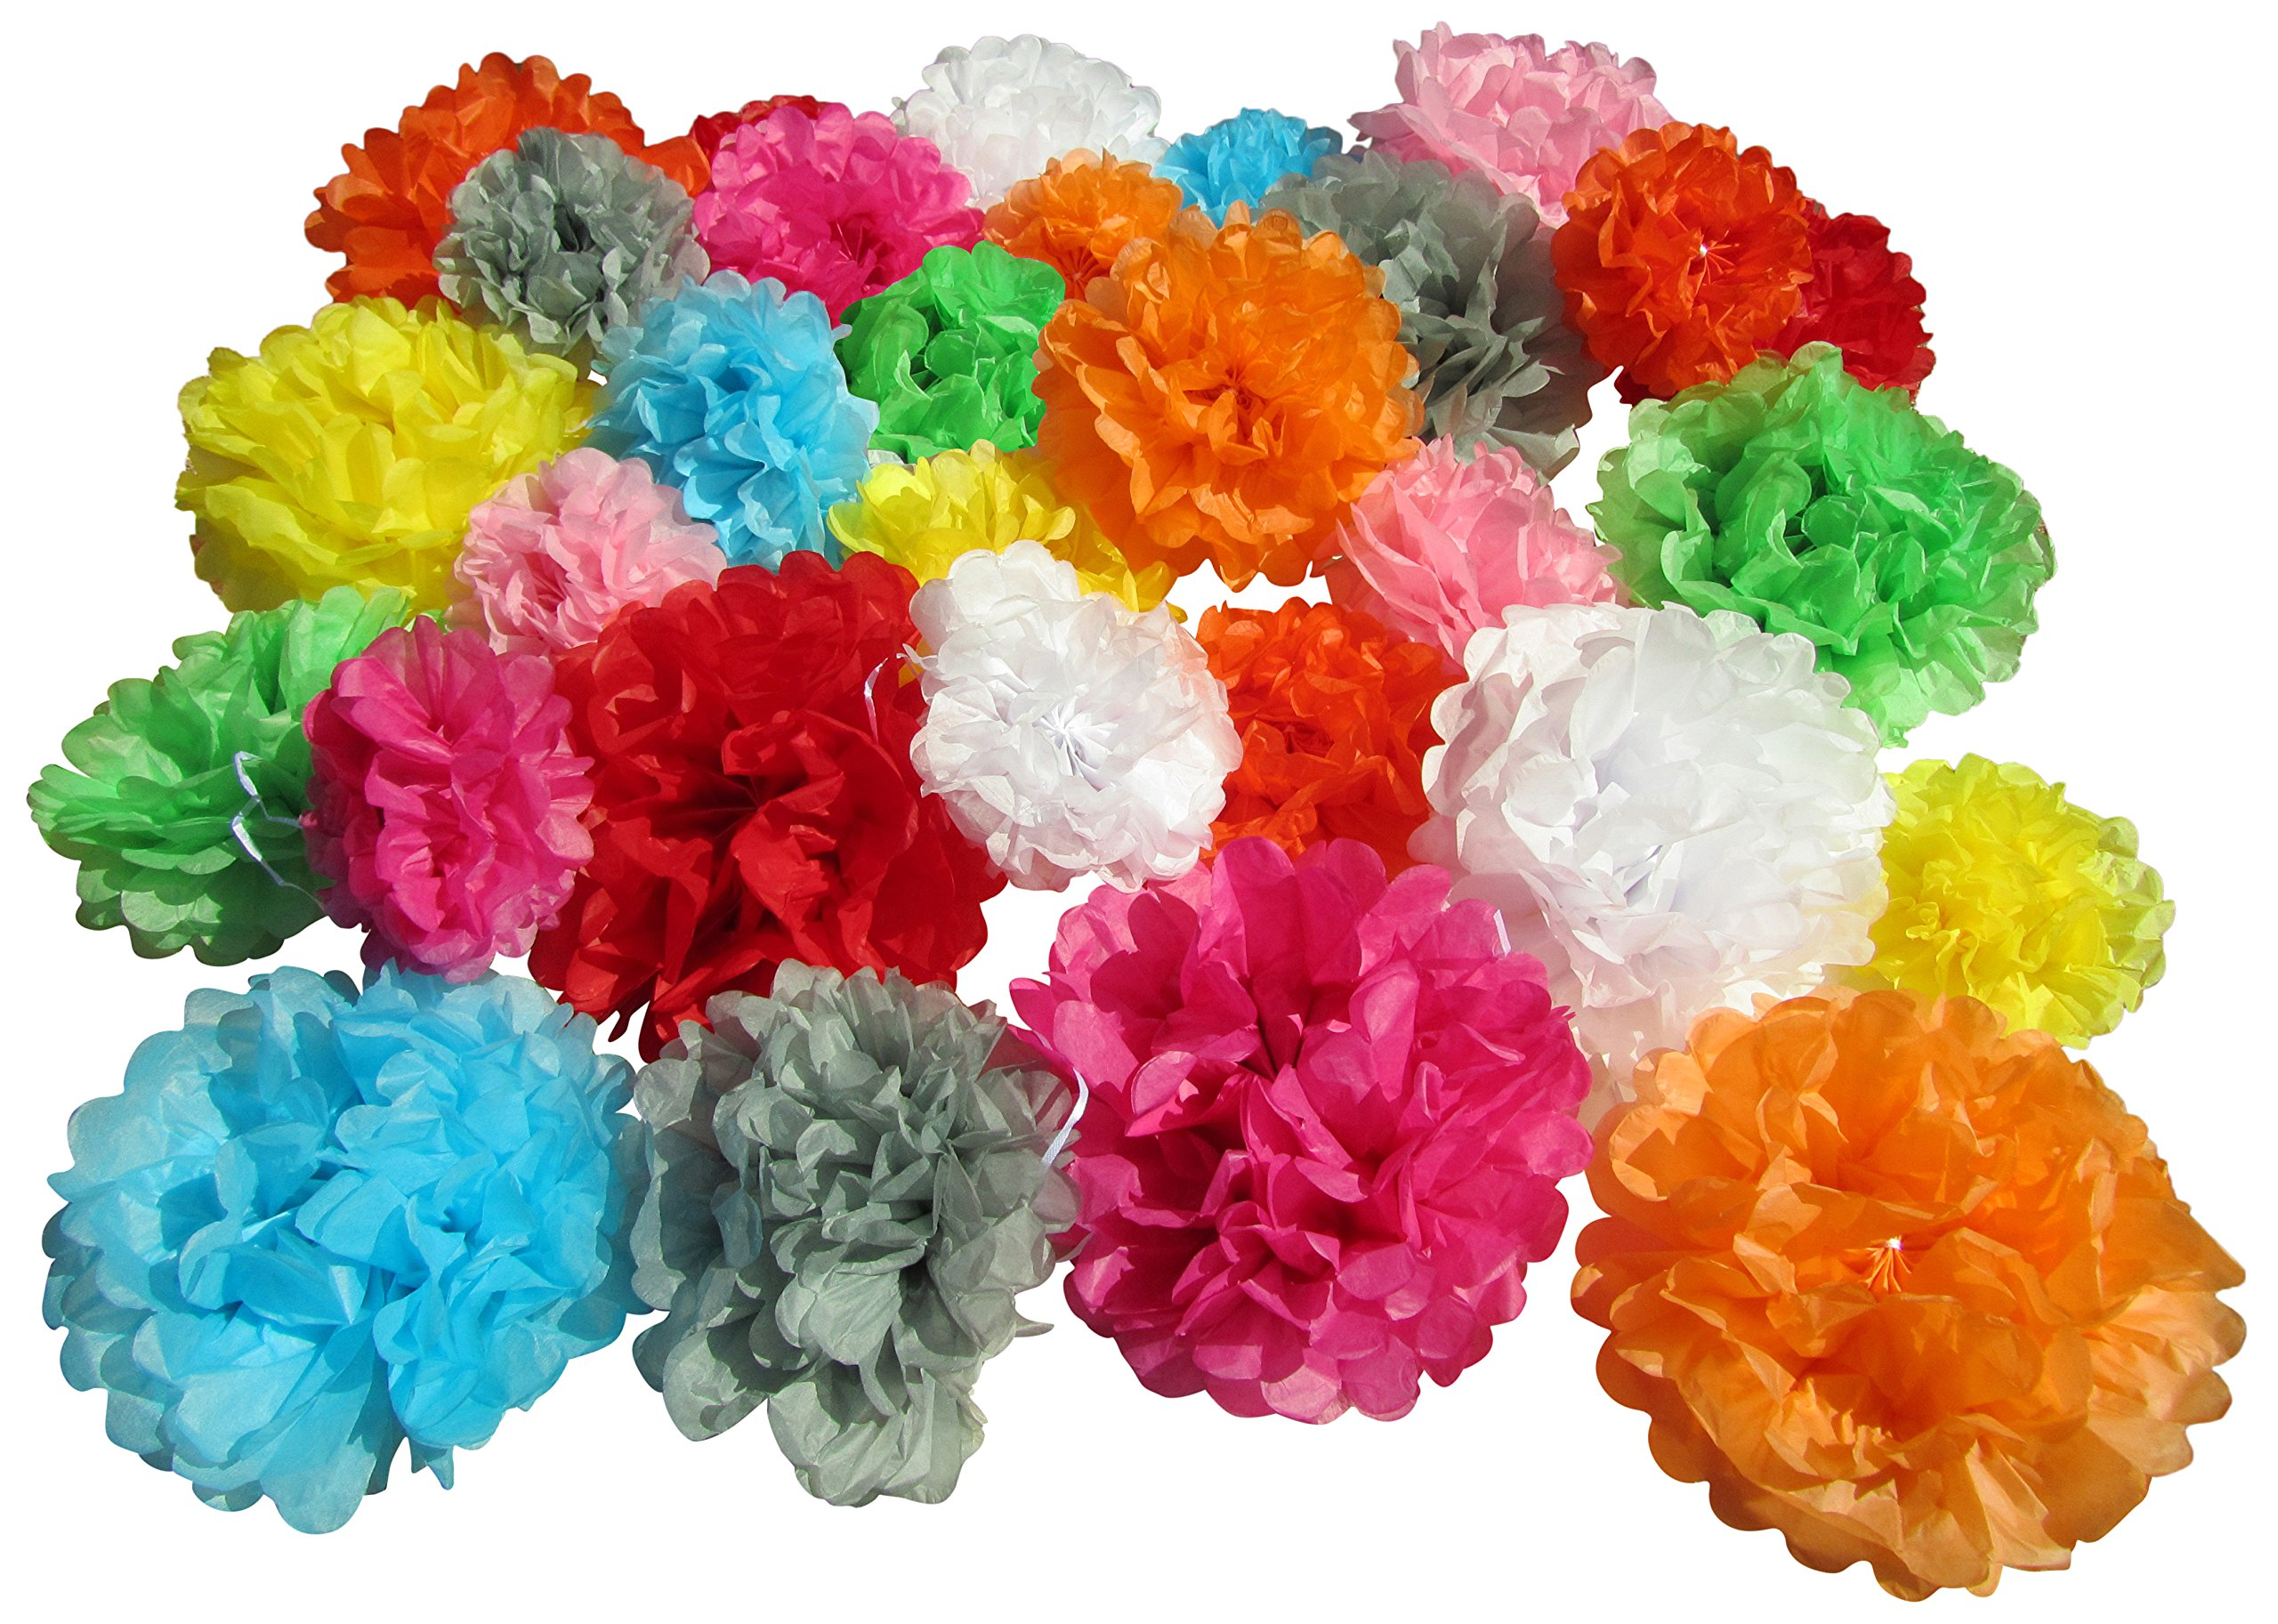 Use4Party Tissue Paper Pom Poms - Set of 30 Pcs - Pre Folded Paper Decoration for Party Wedding Birthday Bridal Baby Showers Mexican Fiesta - 6 8 10 Inch - 10 Mixed Colors